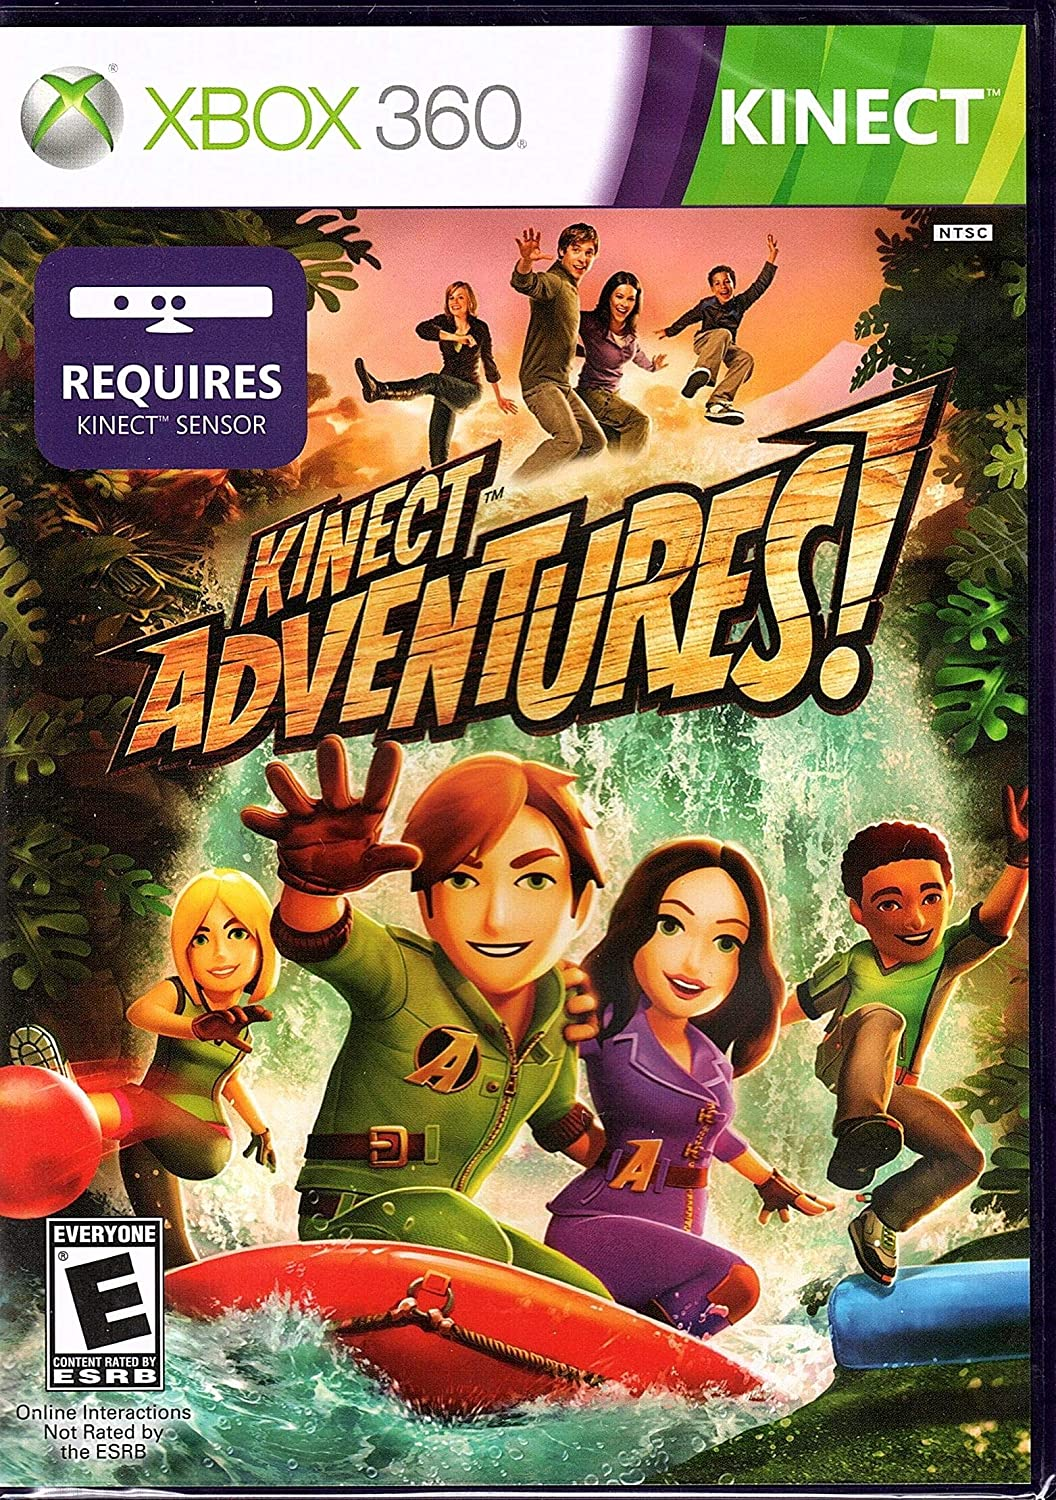 Buy Kinect Adventures Xbox 360 Online At Low Prices In India Microsoft Video Games Amazon In